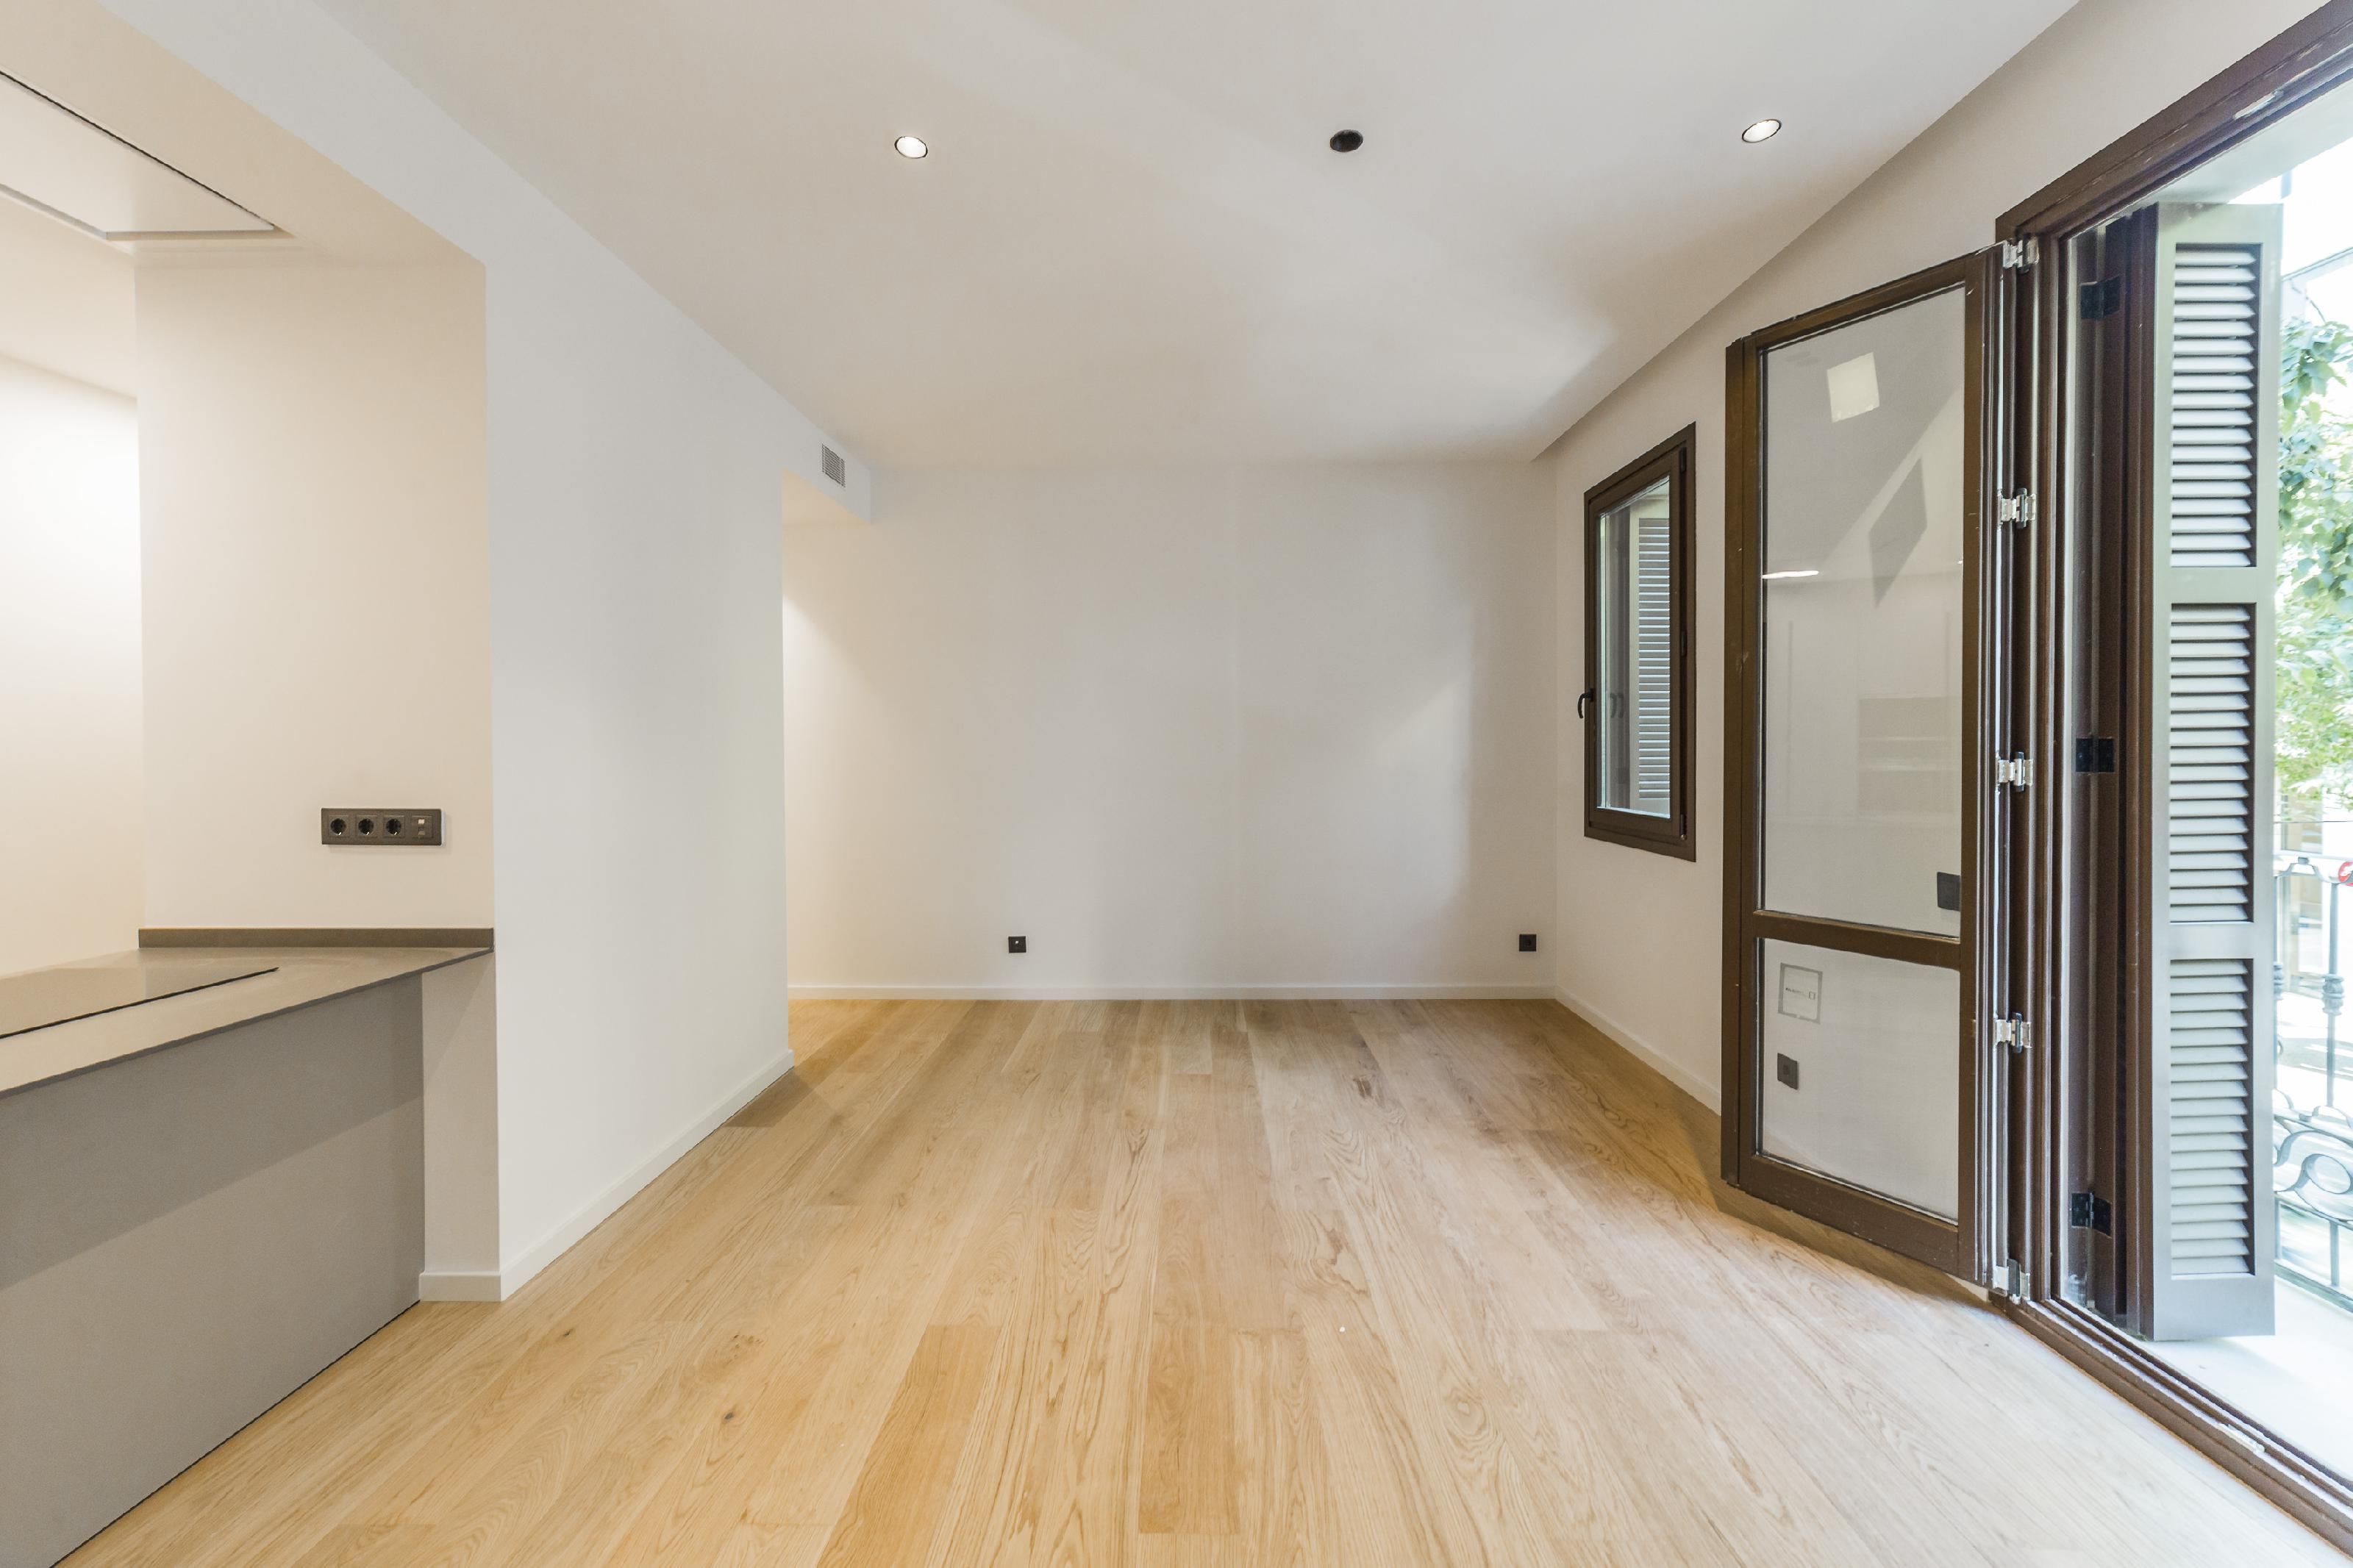 182176 Apartment for sale in Eixample, Old Left Eixample 8